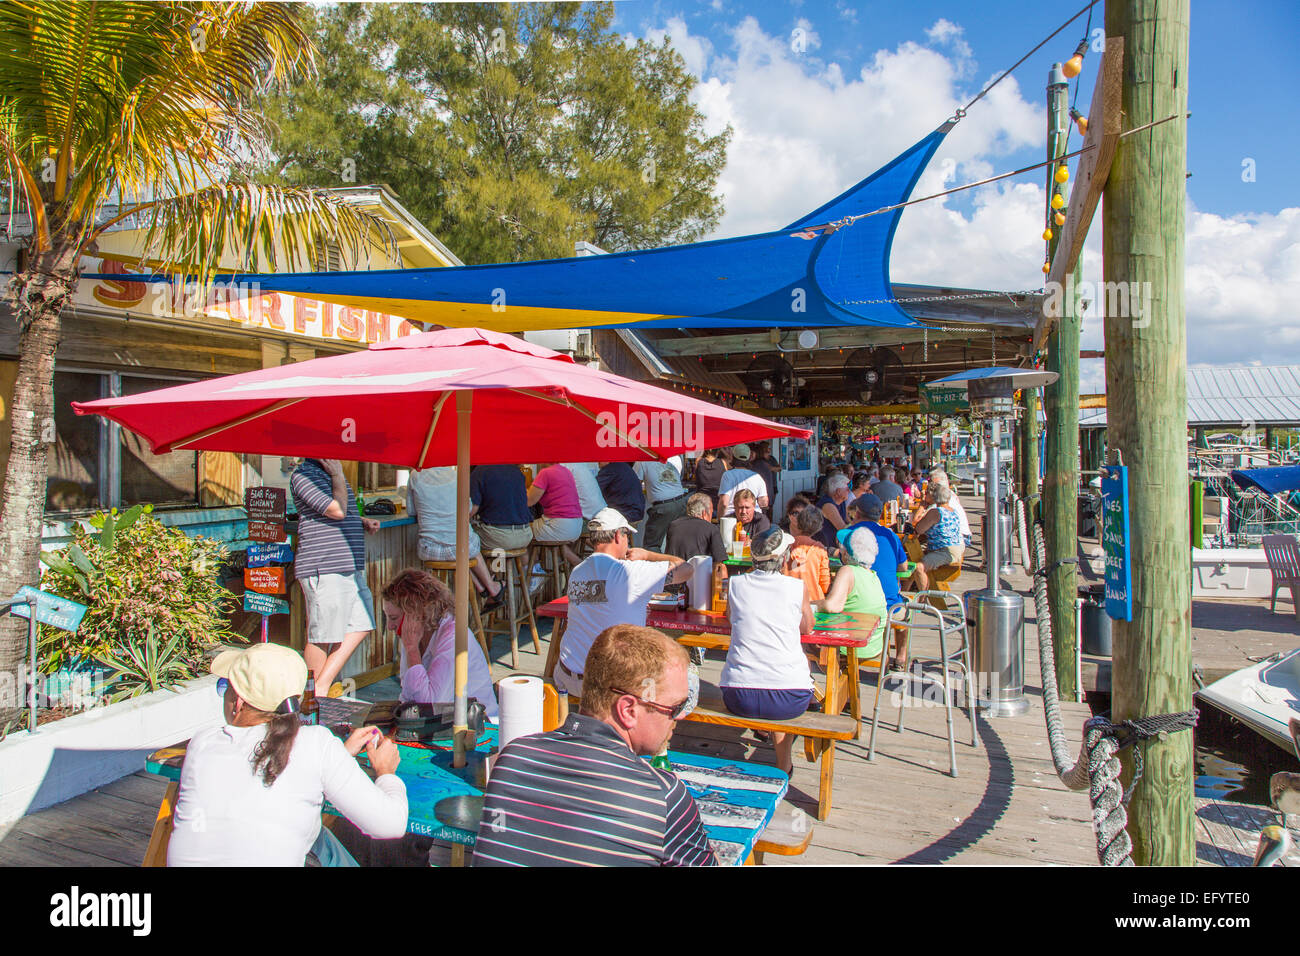 Outdoor dinning on the dock at Star Fish Company Dockside Restaurant in Cortez Florida - Stock Image